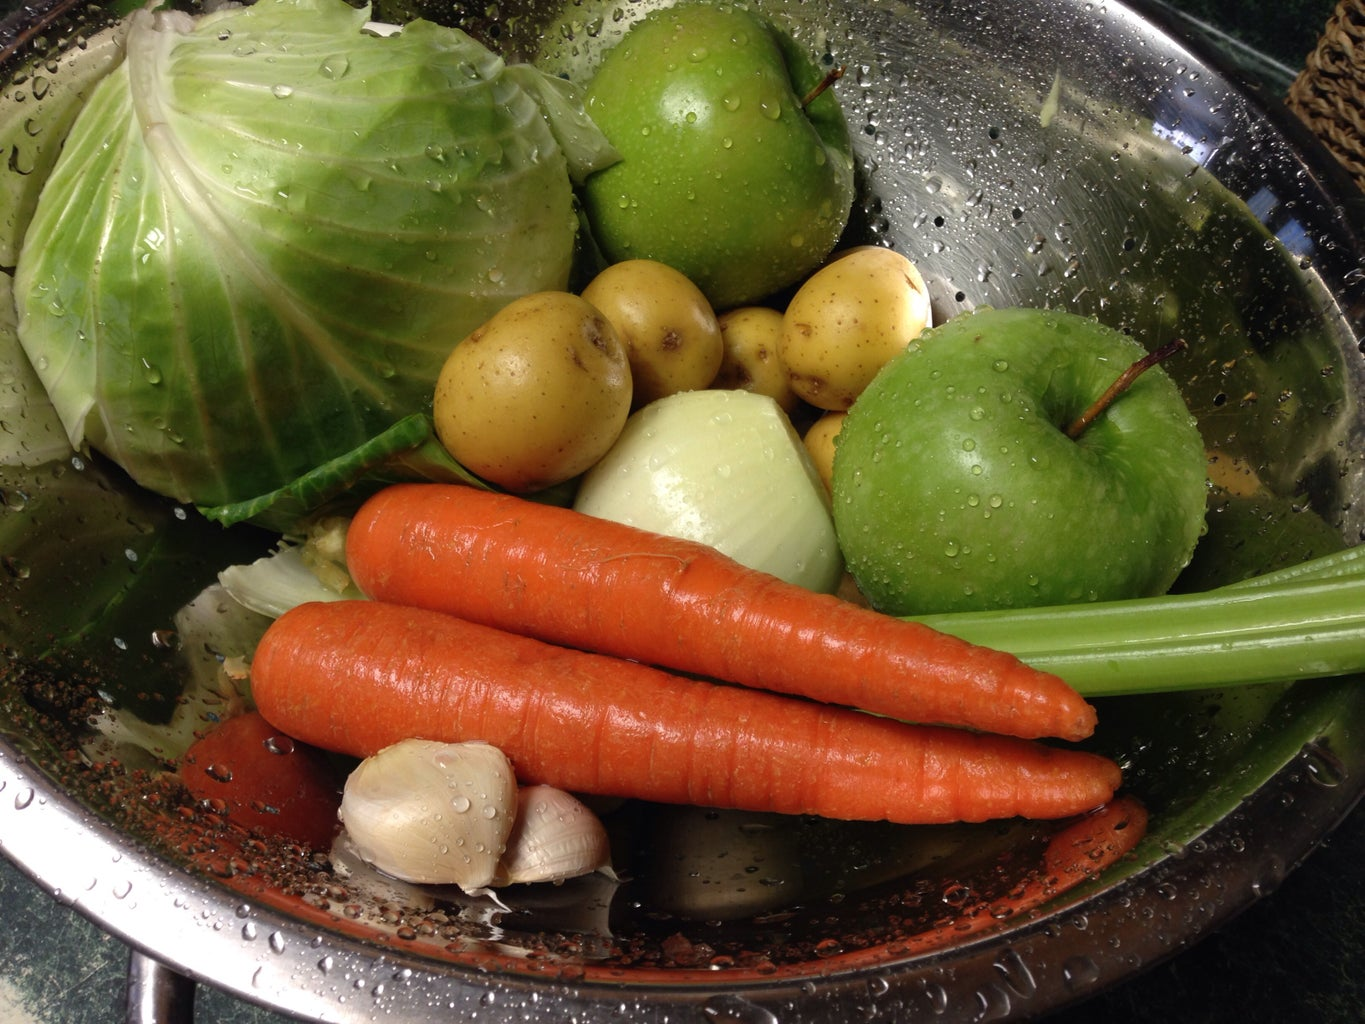 Veggies and Other Preparation